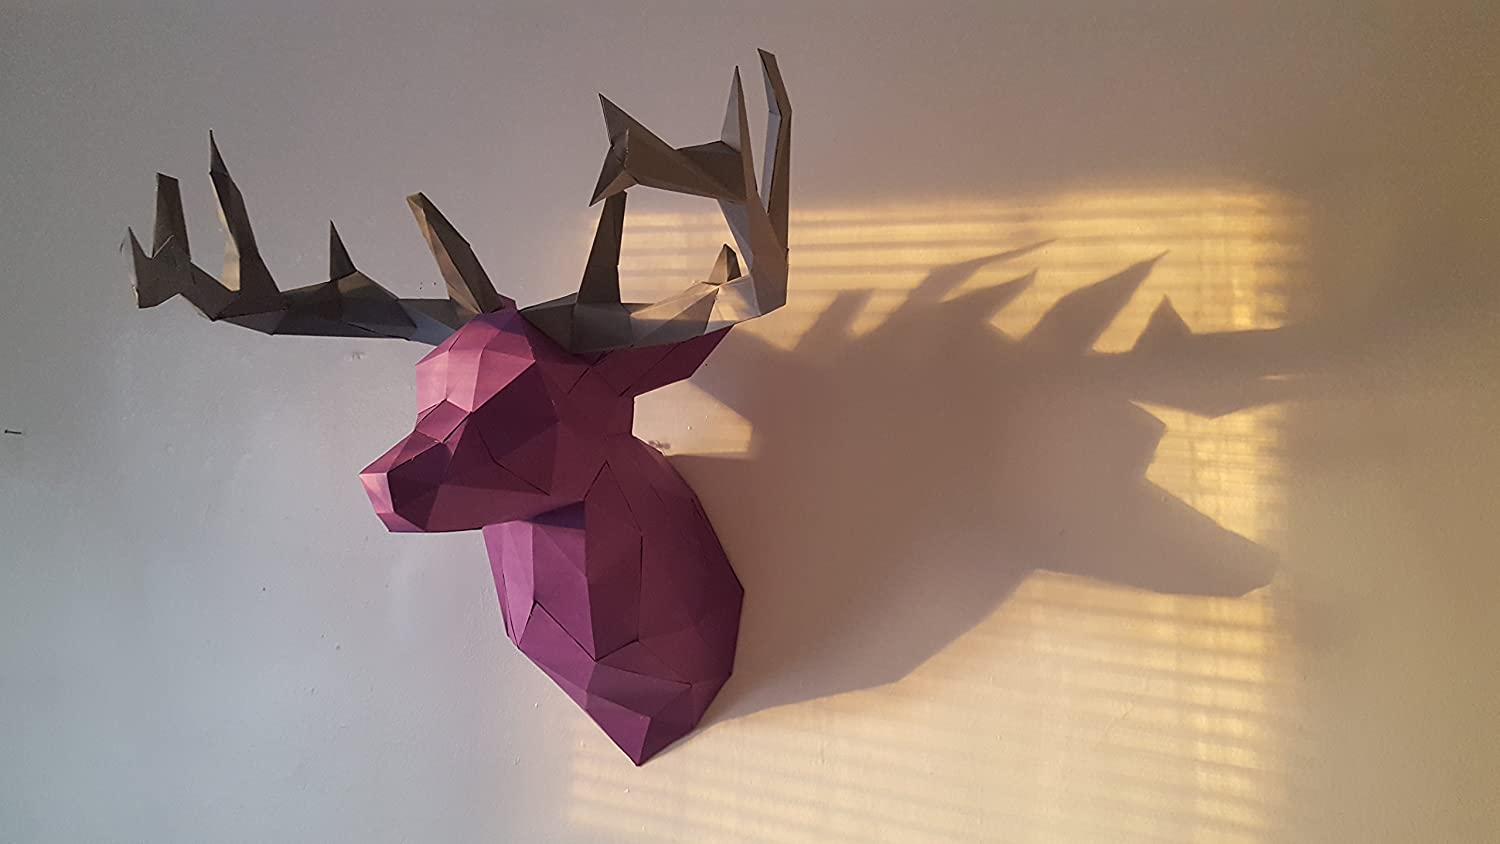 deer 3d papercraft KIT. Kit contains card stock paper template for this DIY (do it yourself) paper sculpture.